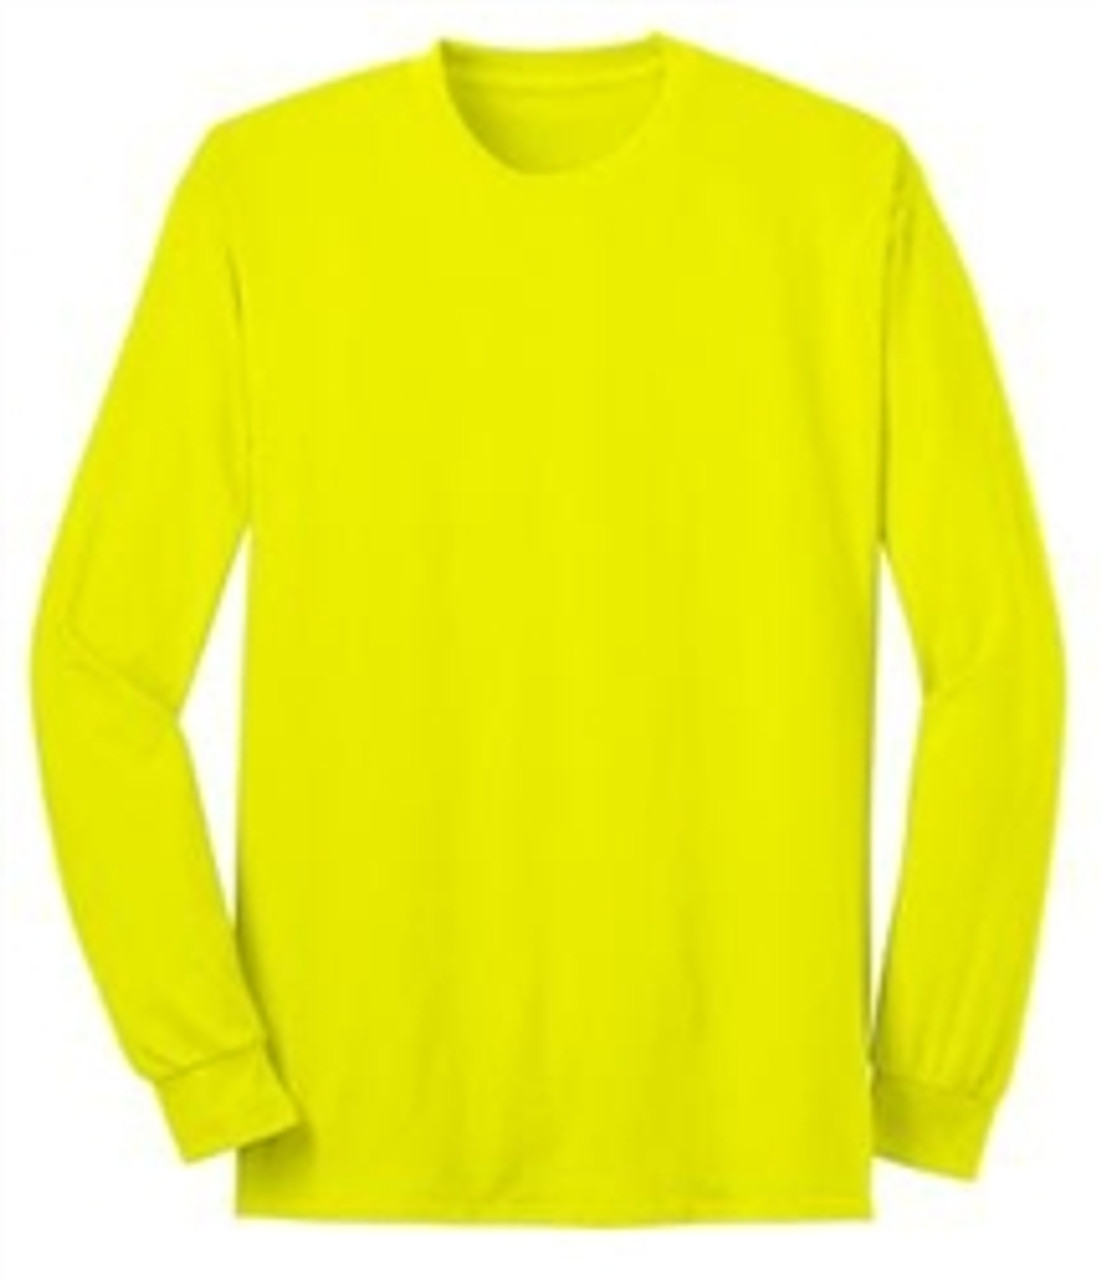 Lime Green Long Sleeve T-Shirt - 50/50 Cotton/Poly (Preshrunk) USA MADE *Custom Printing Available*